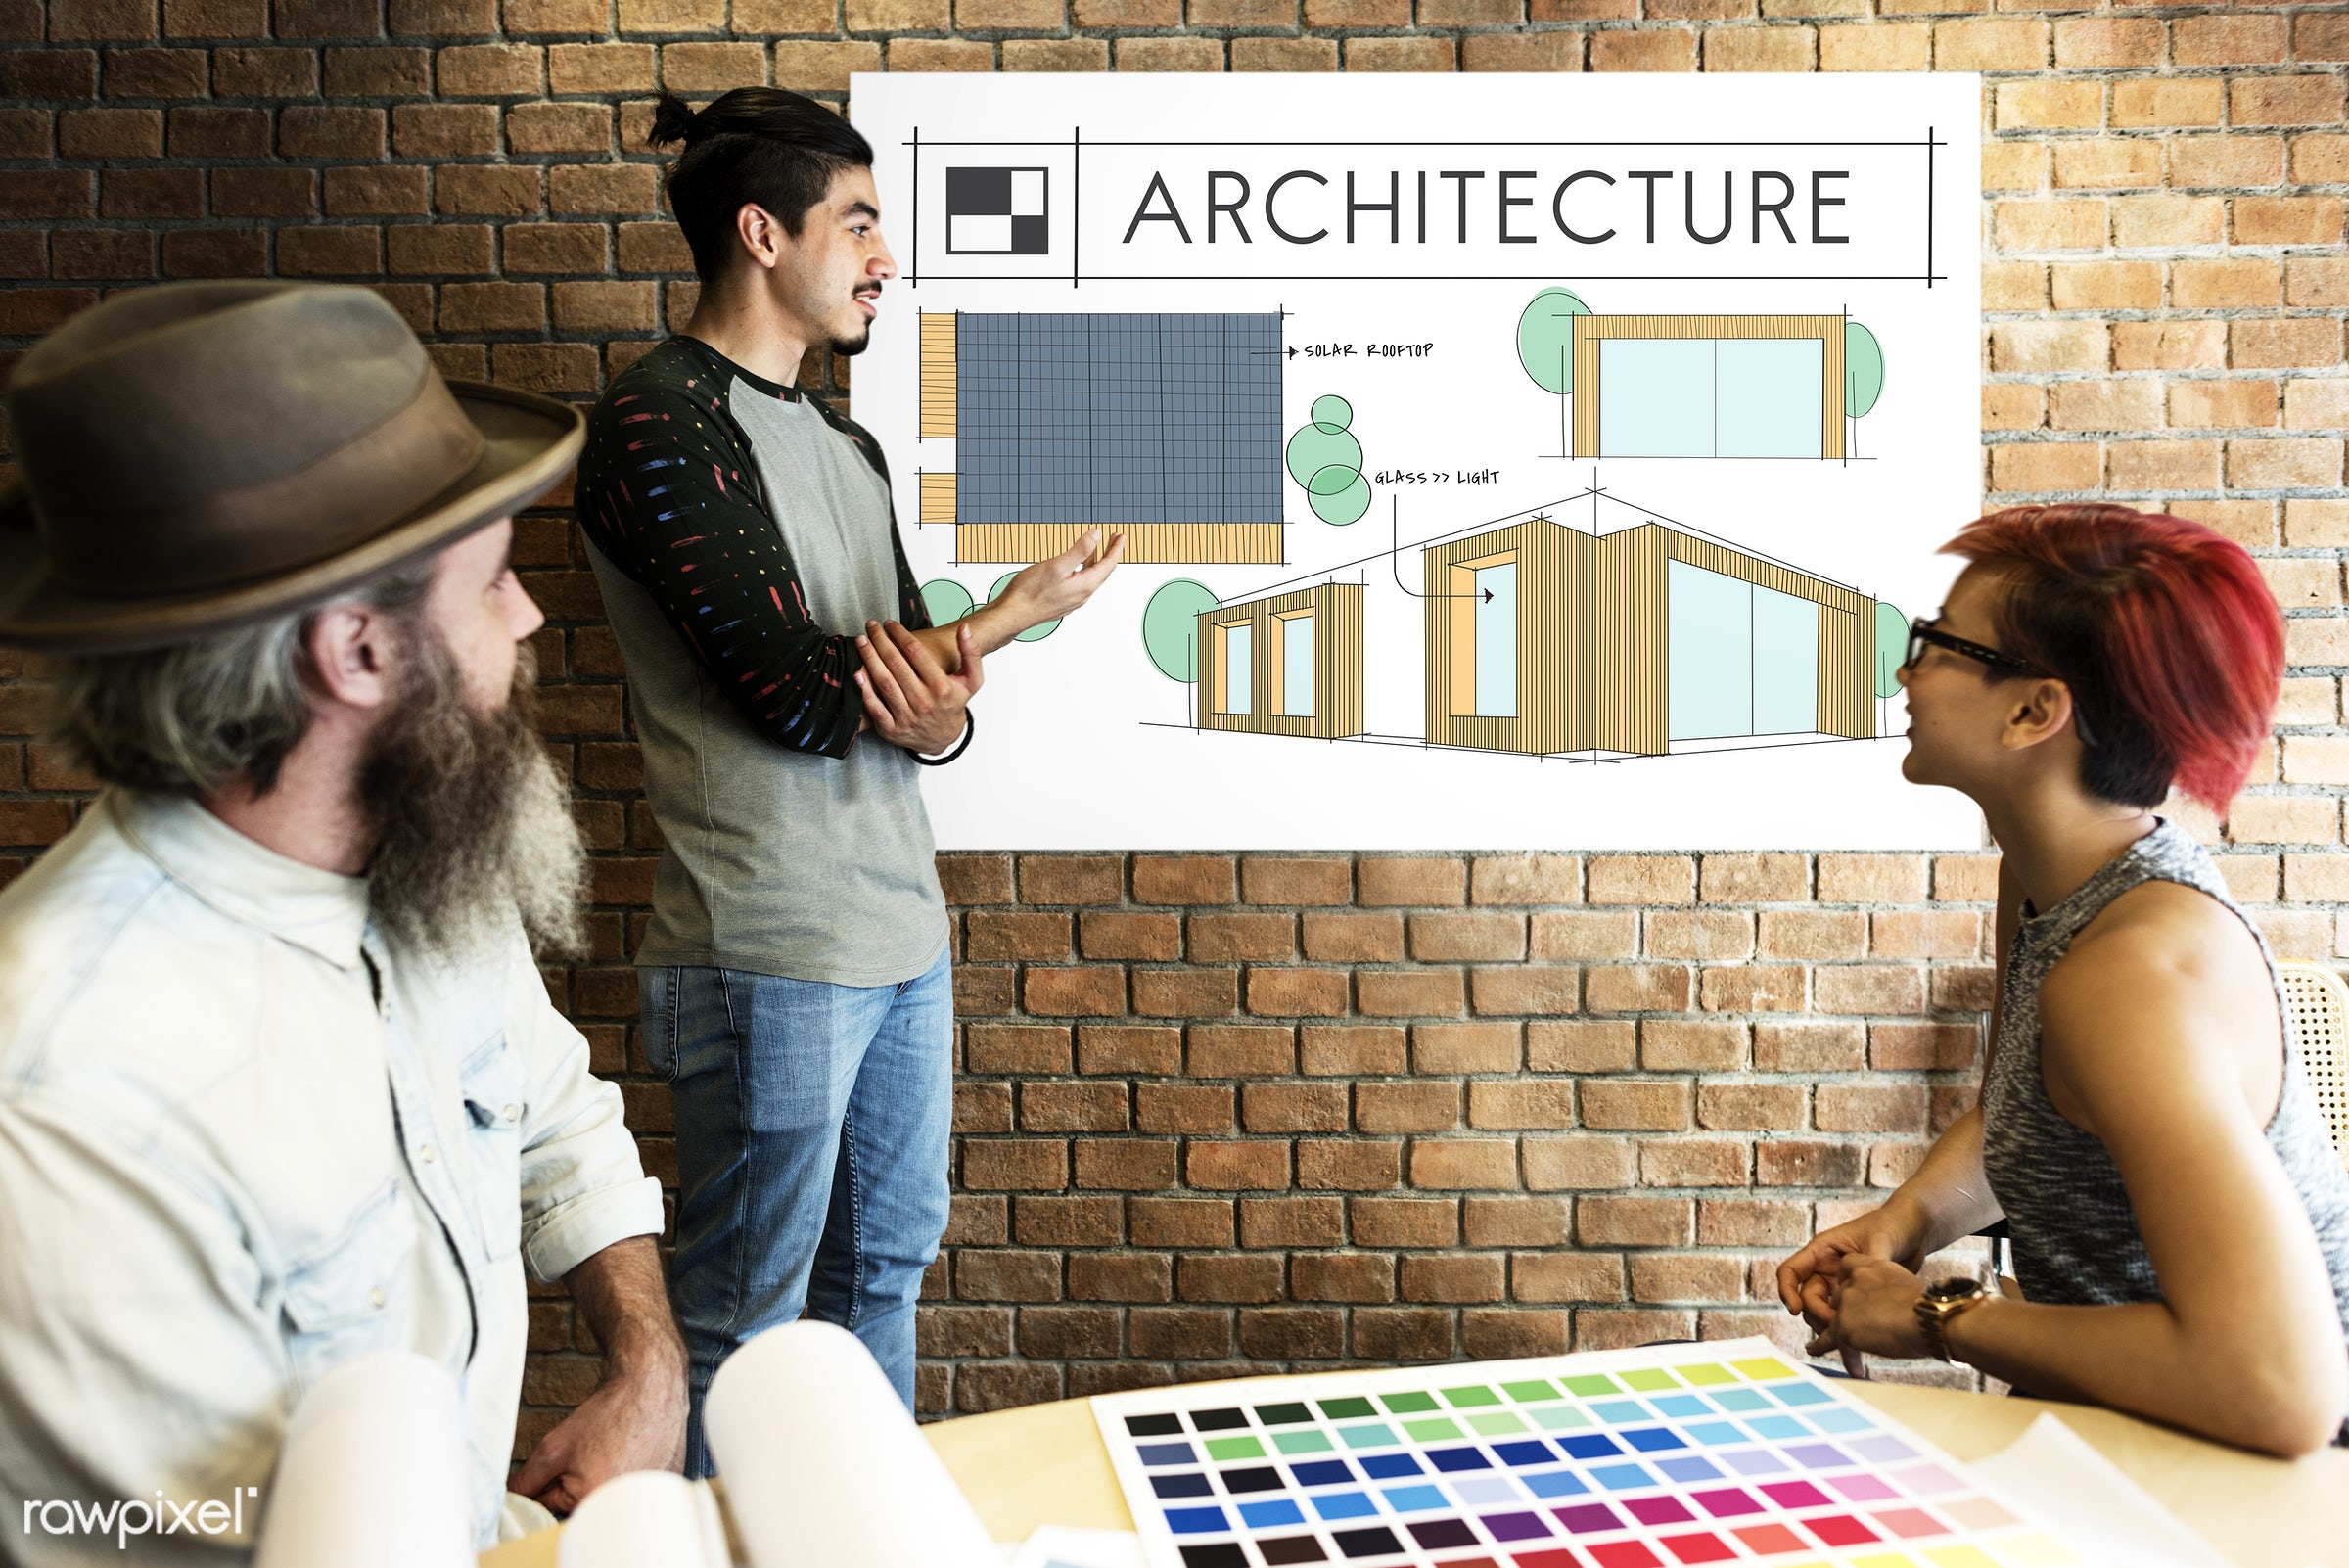 architecture, art, beard, board, brick wall, building, chart, color chart, colors, contemporary, creative, decor, decoration...